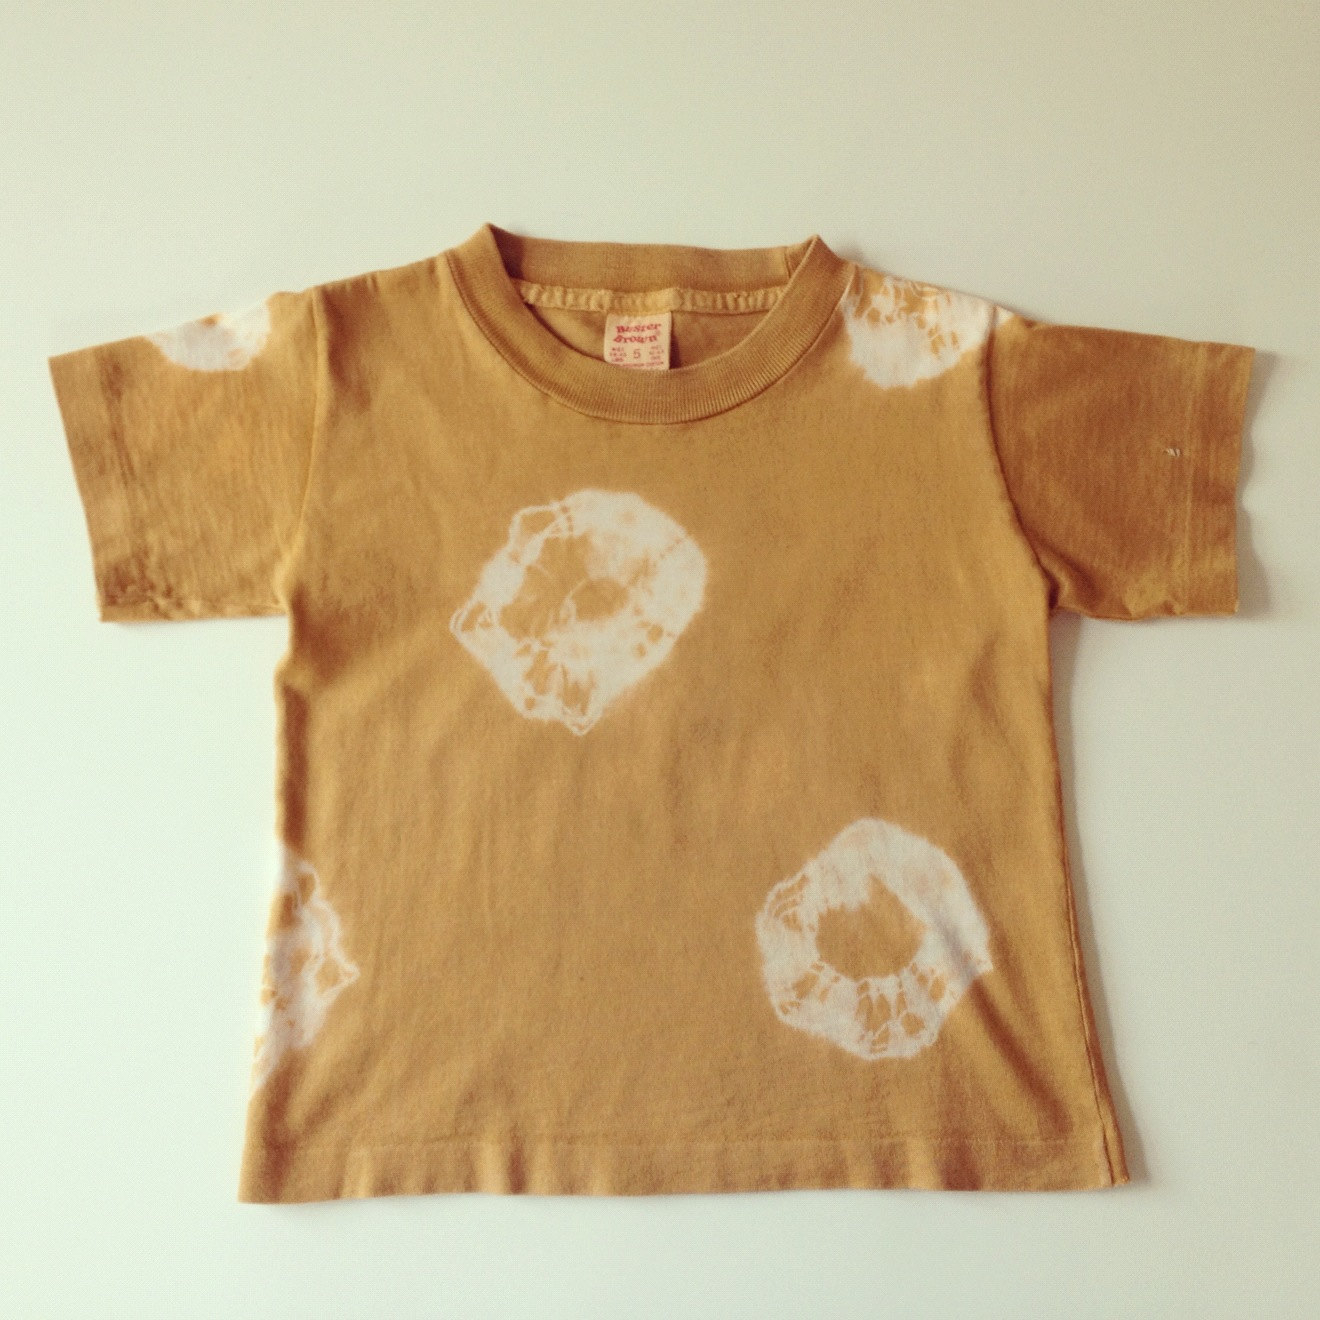 How to Stain a Shirt with Coffee